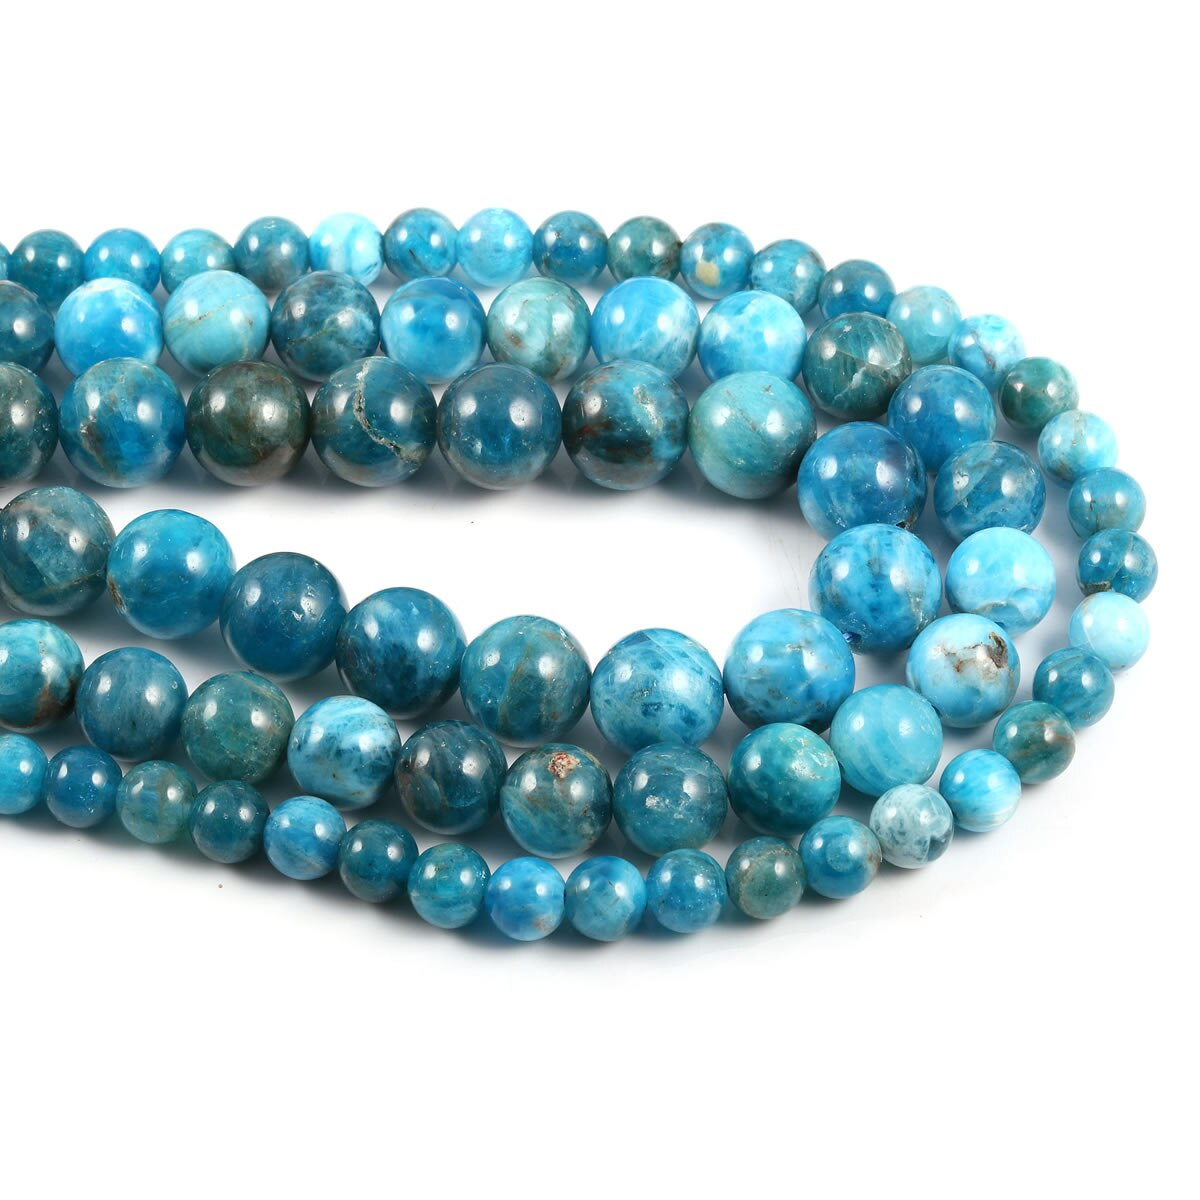 A+ Natural Blue Apatite Gem Stone Beads Round Loose Beads For Jewelry Making DIY Bracelet Pendant Necklace 6/8/10mm 15''  - buy with discount